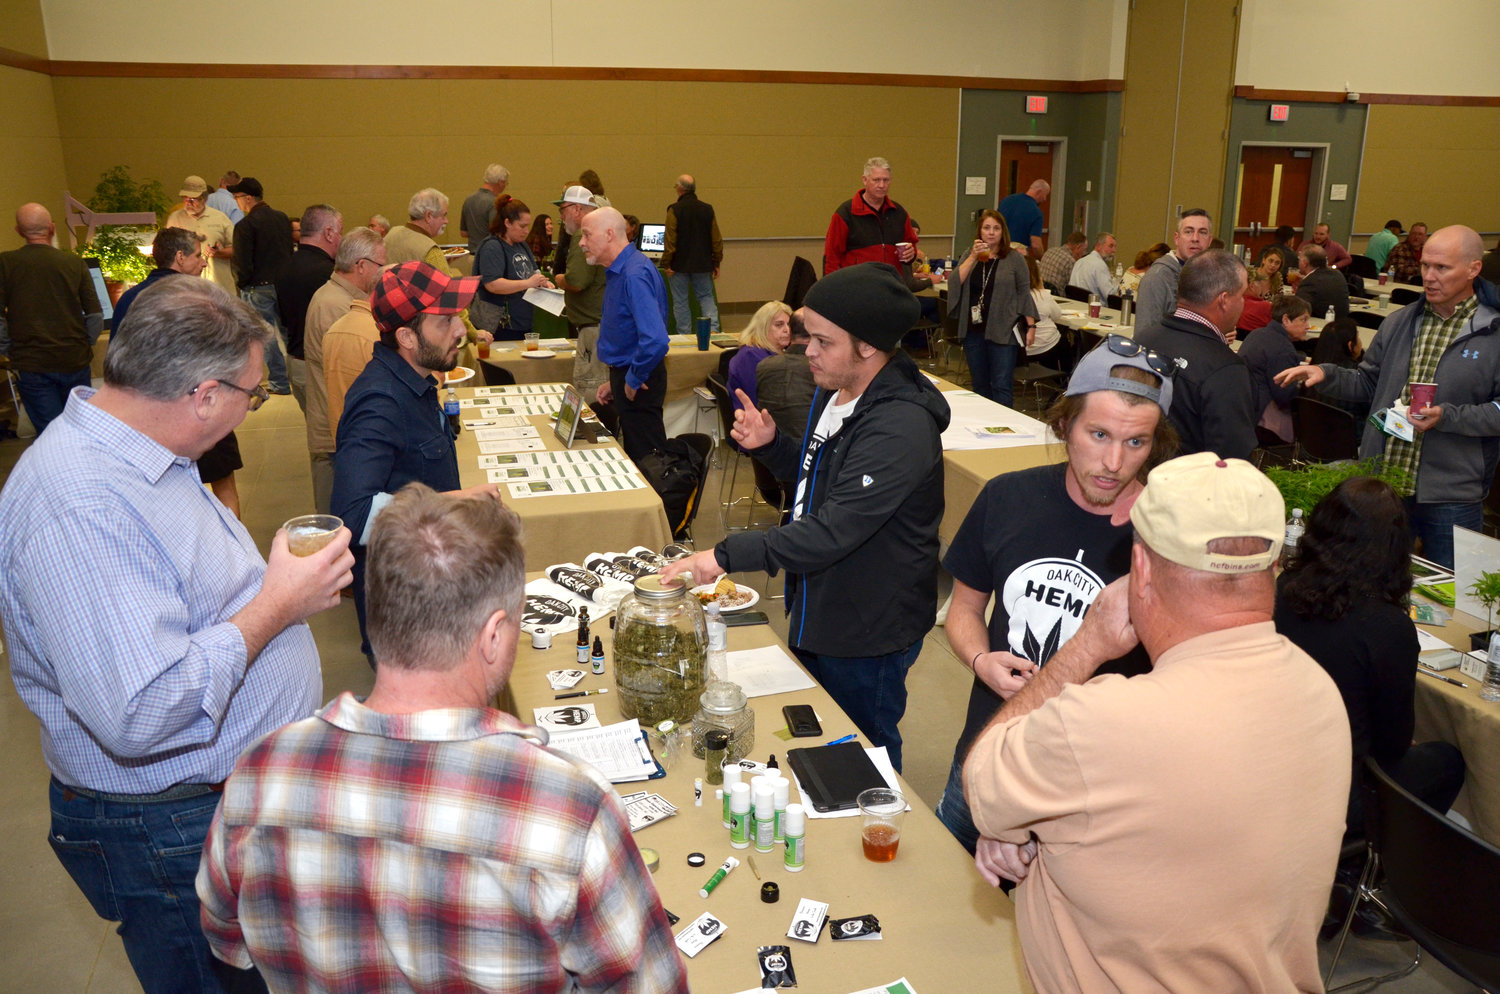 Exhibitors from Hemp production industry companies talk with participants about the value of their products.  The conference couldn't be offered just two years ago because of the attorney general (?) of the state wouldn't allow it due to federal regulations.